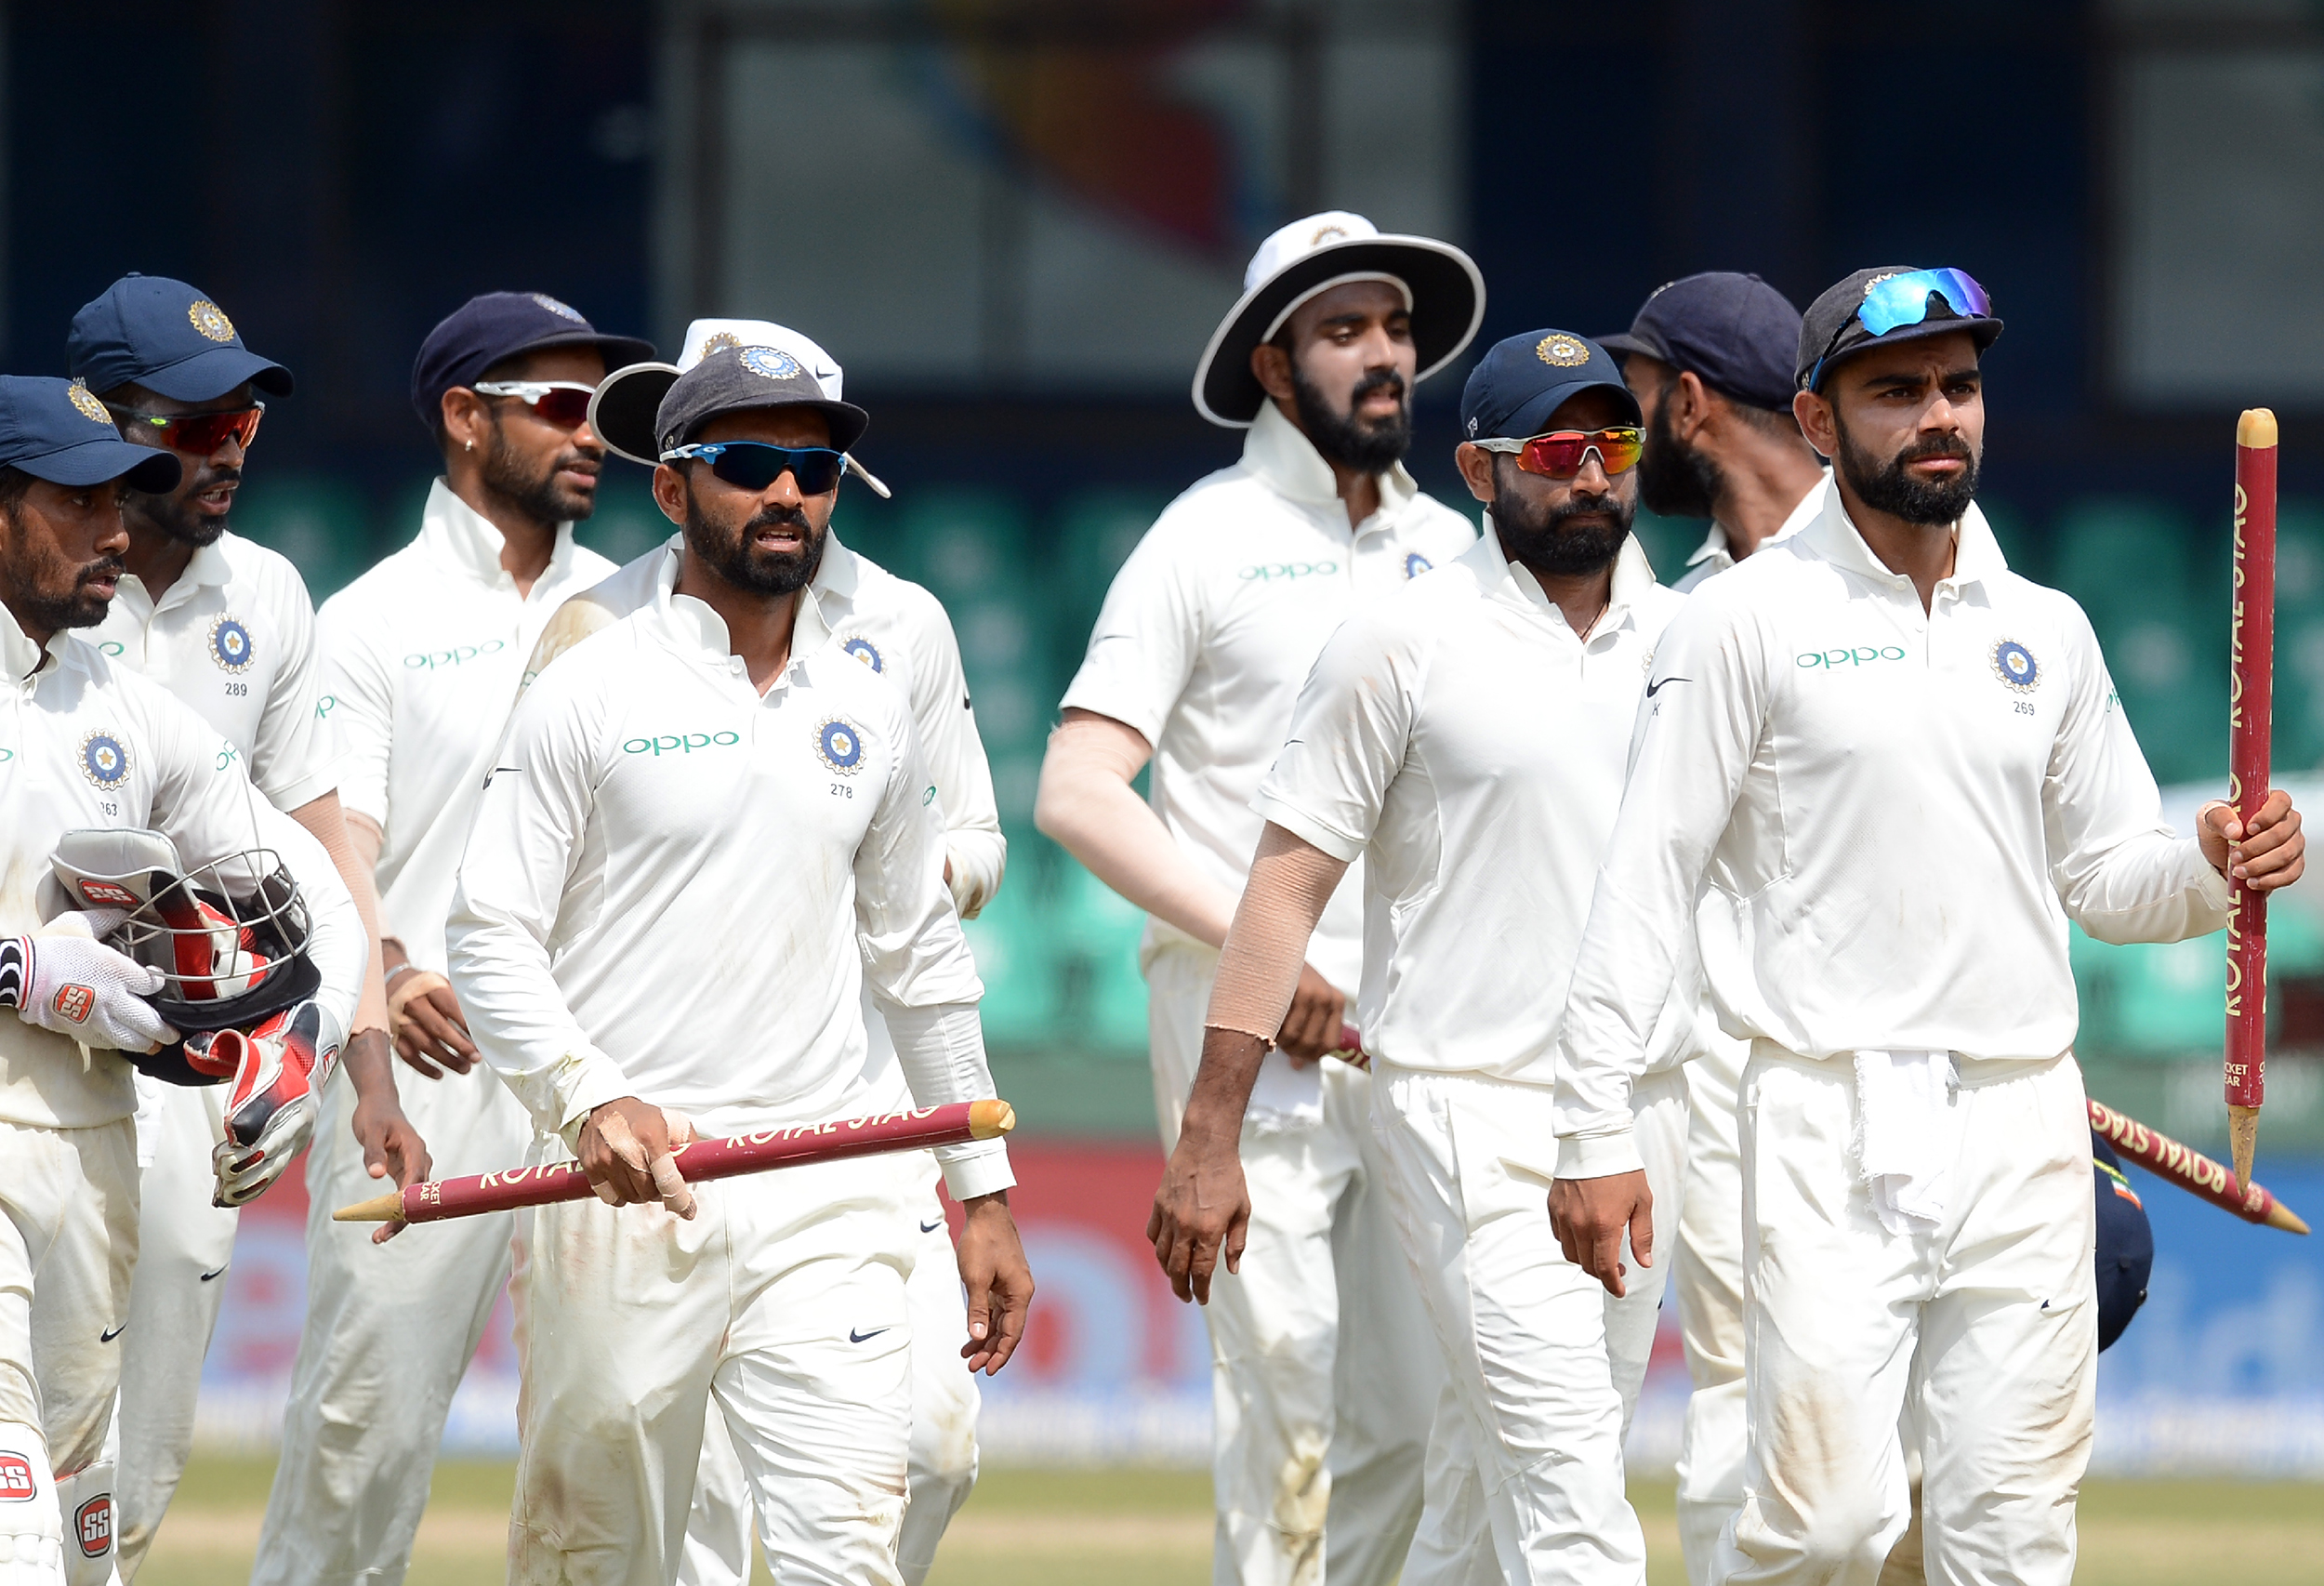 India have never won a full Test series overseas. Photo: AFP